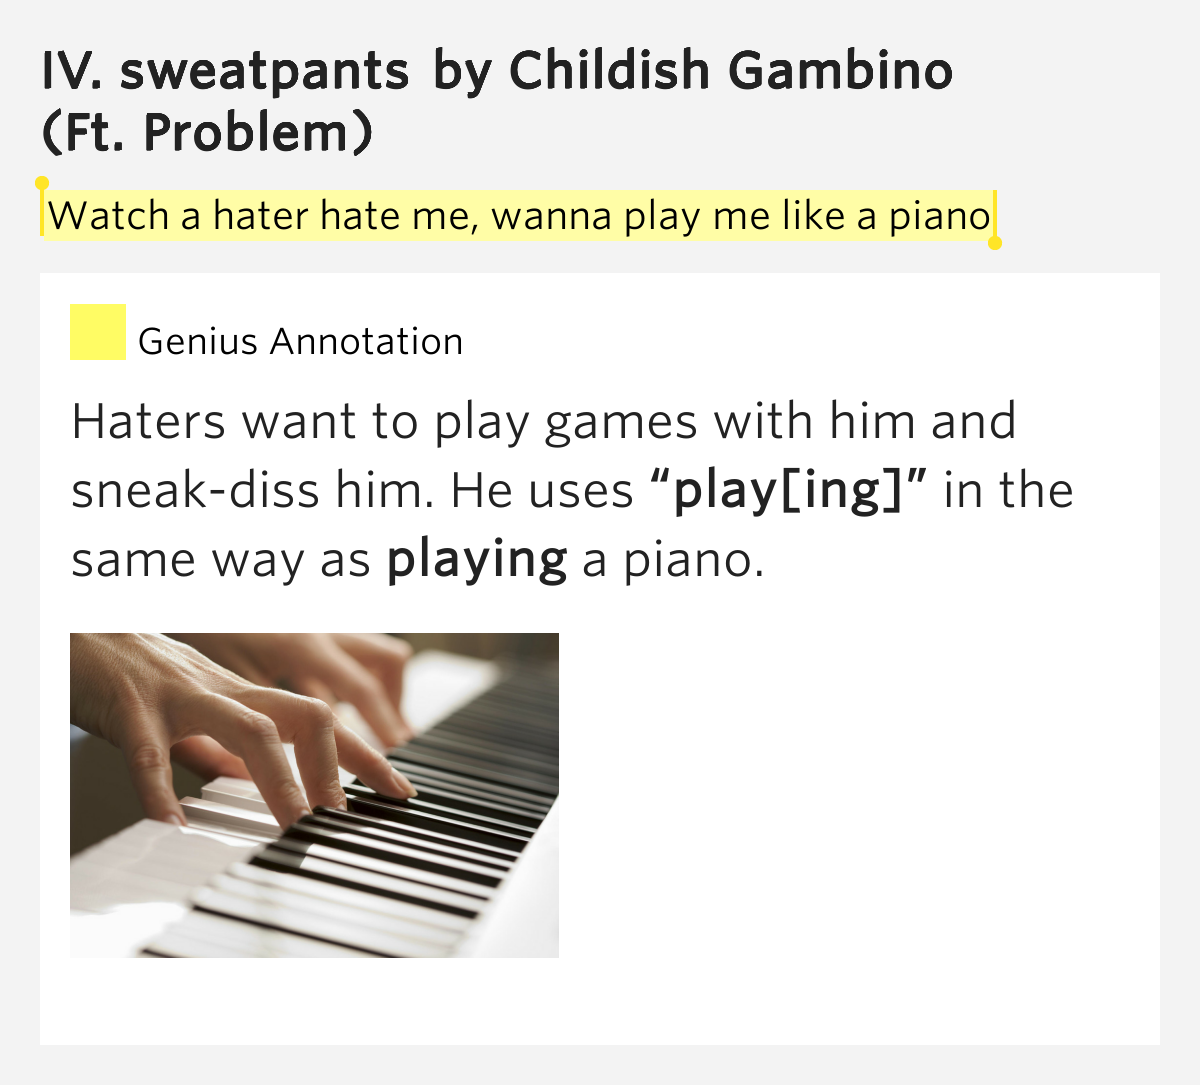 Lyrics to IV Sweatpants by Childish Gambino Watching haters wonder why Gambino got the game locked HalfThai thickie all she wanna do is Bangkok Got